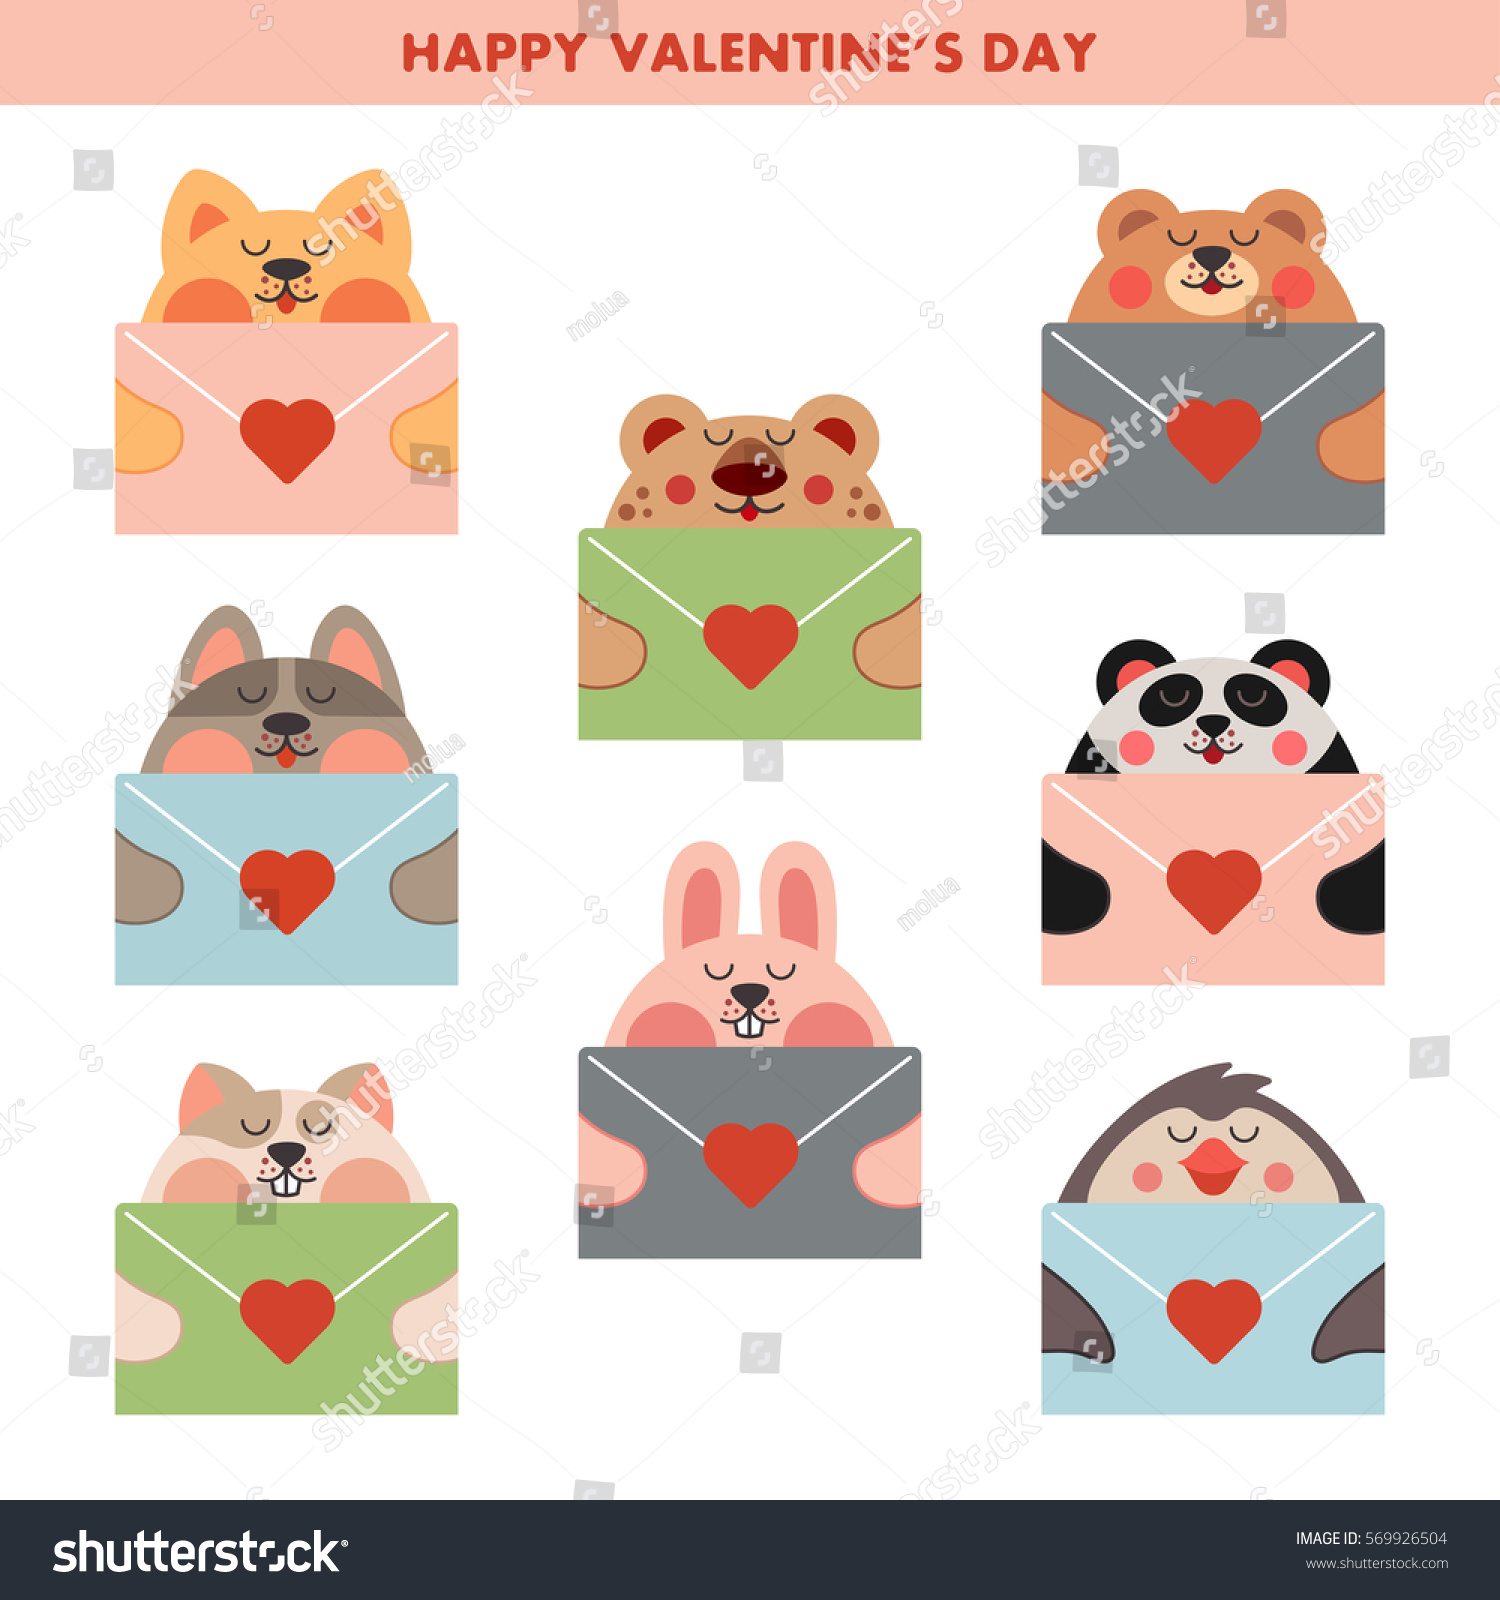 Image of: Shutterstock Cute Love Cards With Kawaii Animals Cat Dog Hamster Rabbit Bear Shutterstock Cute Love Cards Kawaii Animals Cat Stock Vector royalty Free